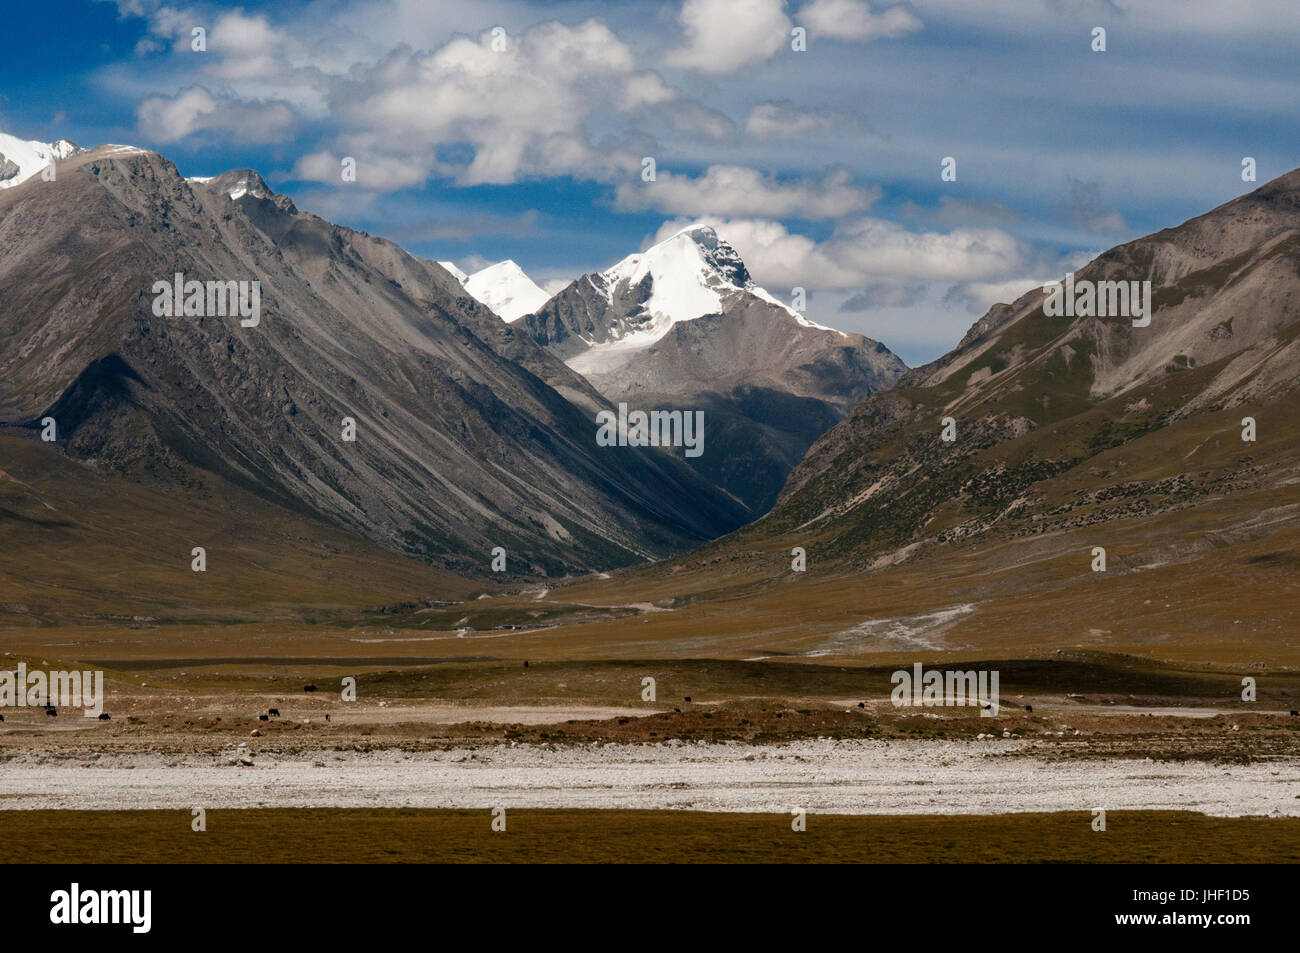 Travel landscape attractions in train Lhasa-Shanghai. Yuzhu Peak: at 6,178 meters, it is the highest point of the - Stock Image